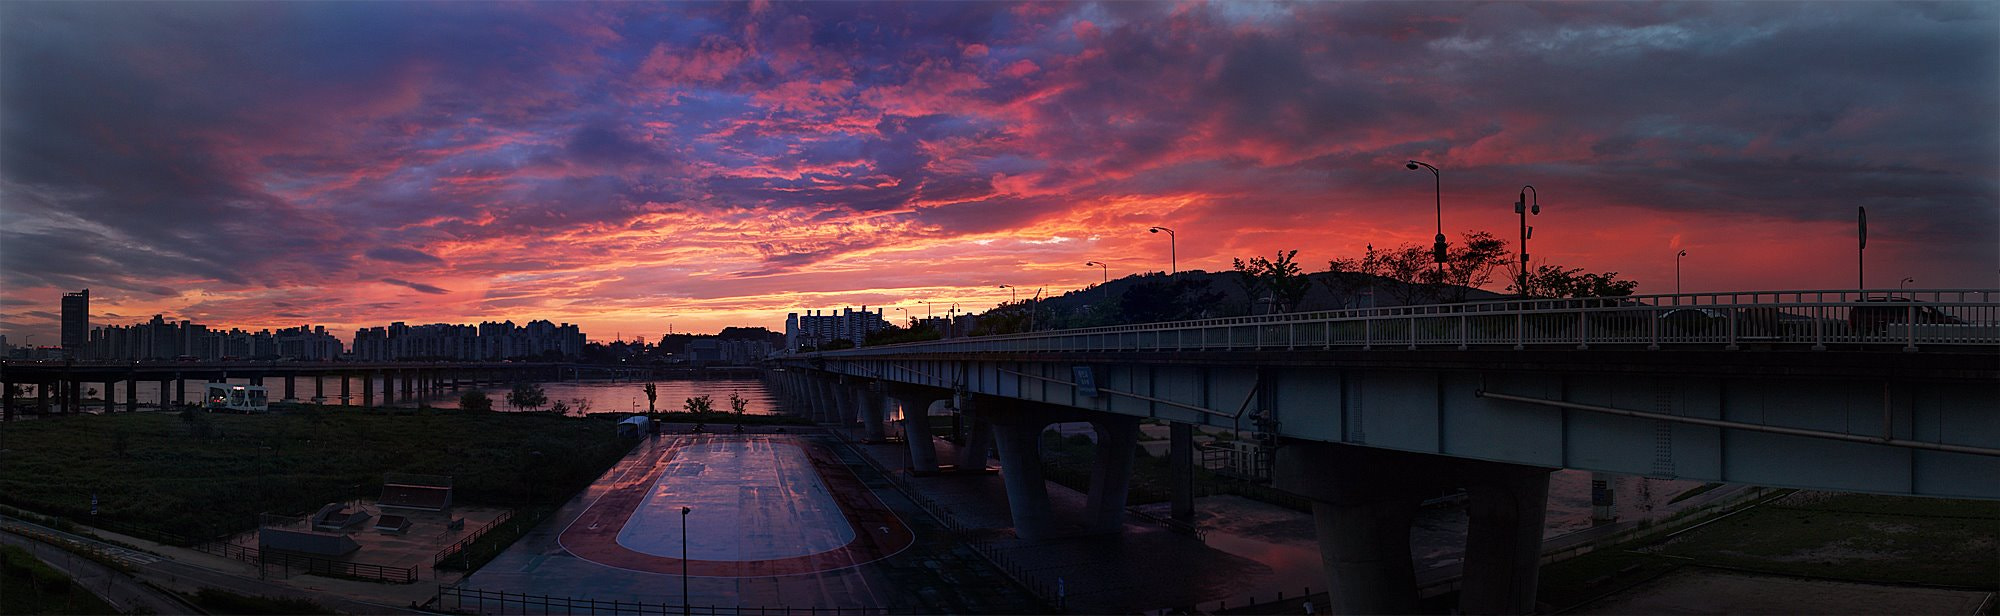 Photograph Gwangjin bridge Panorama by Yoon Geun Park on 500px